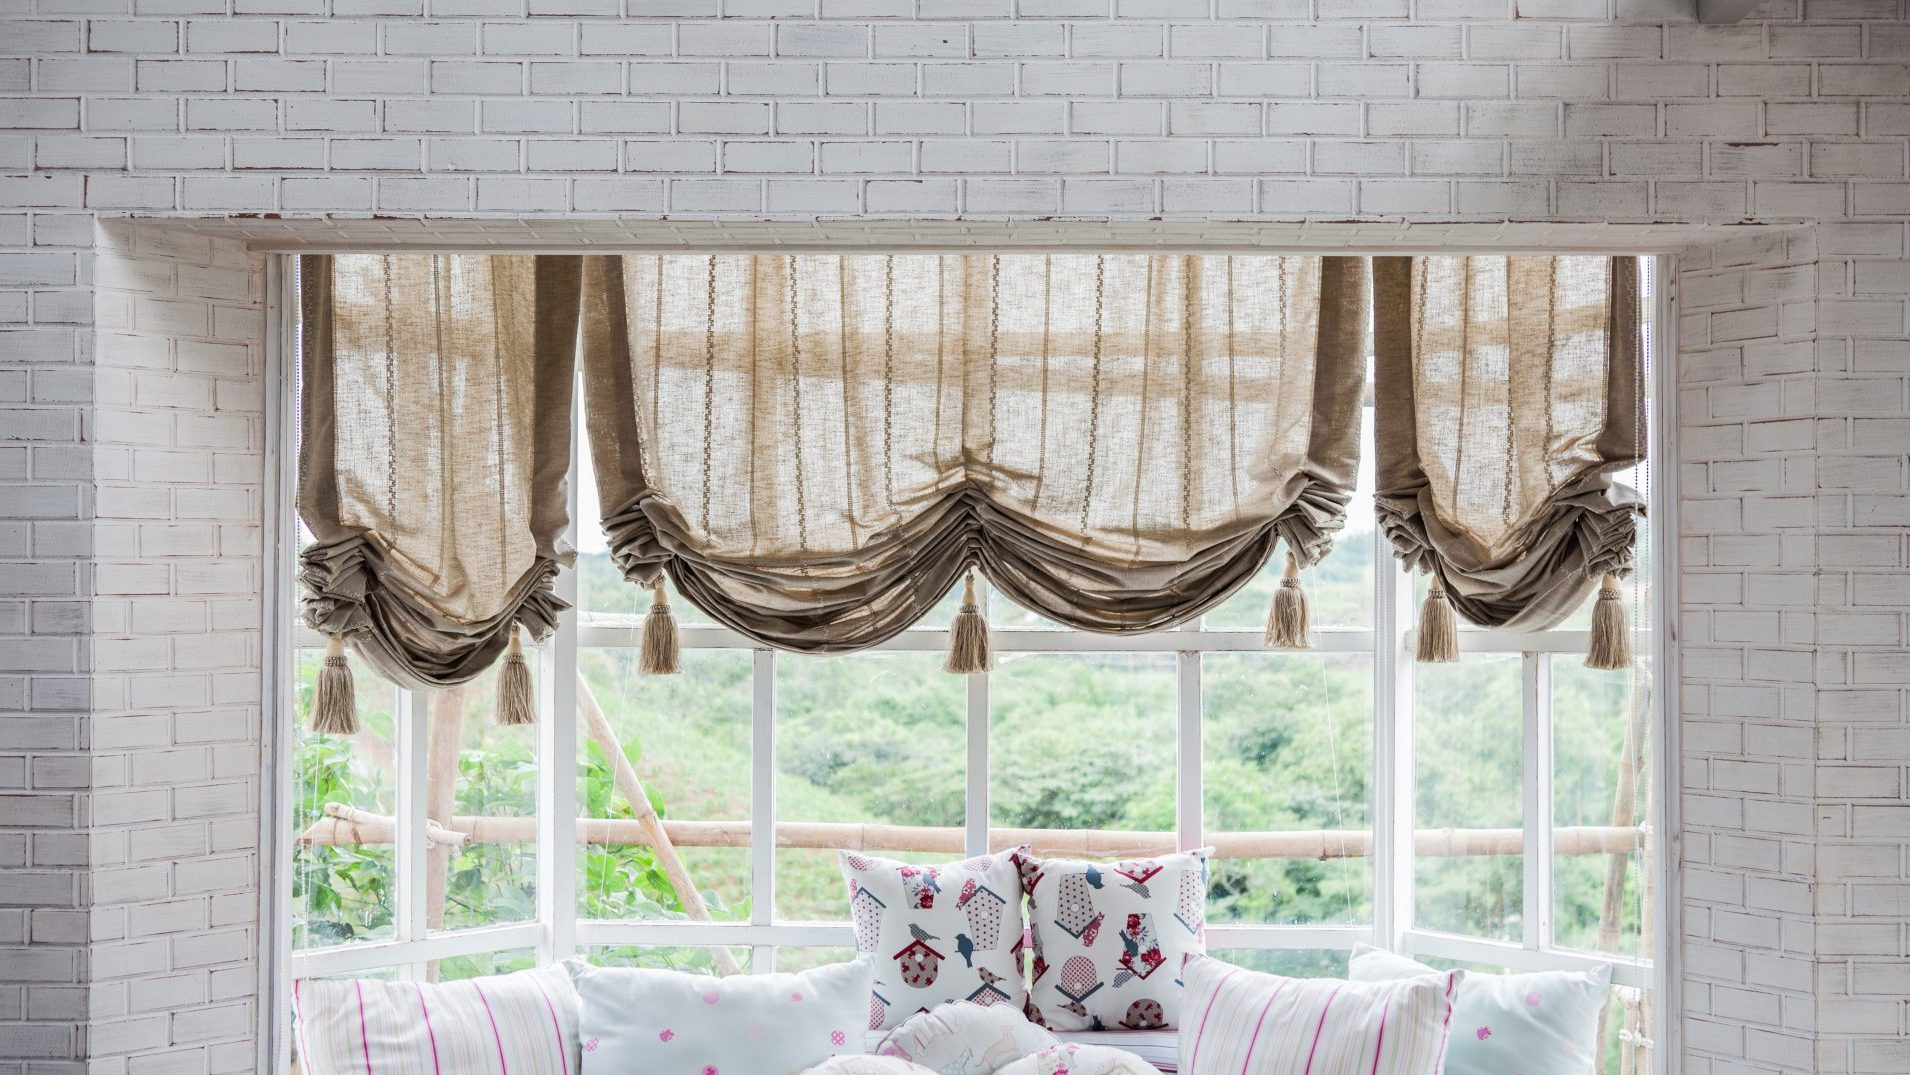 Window Coverings Decorative and Functional